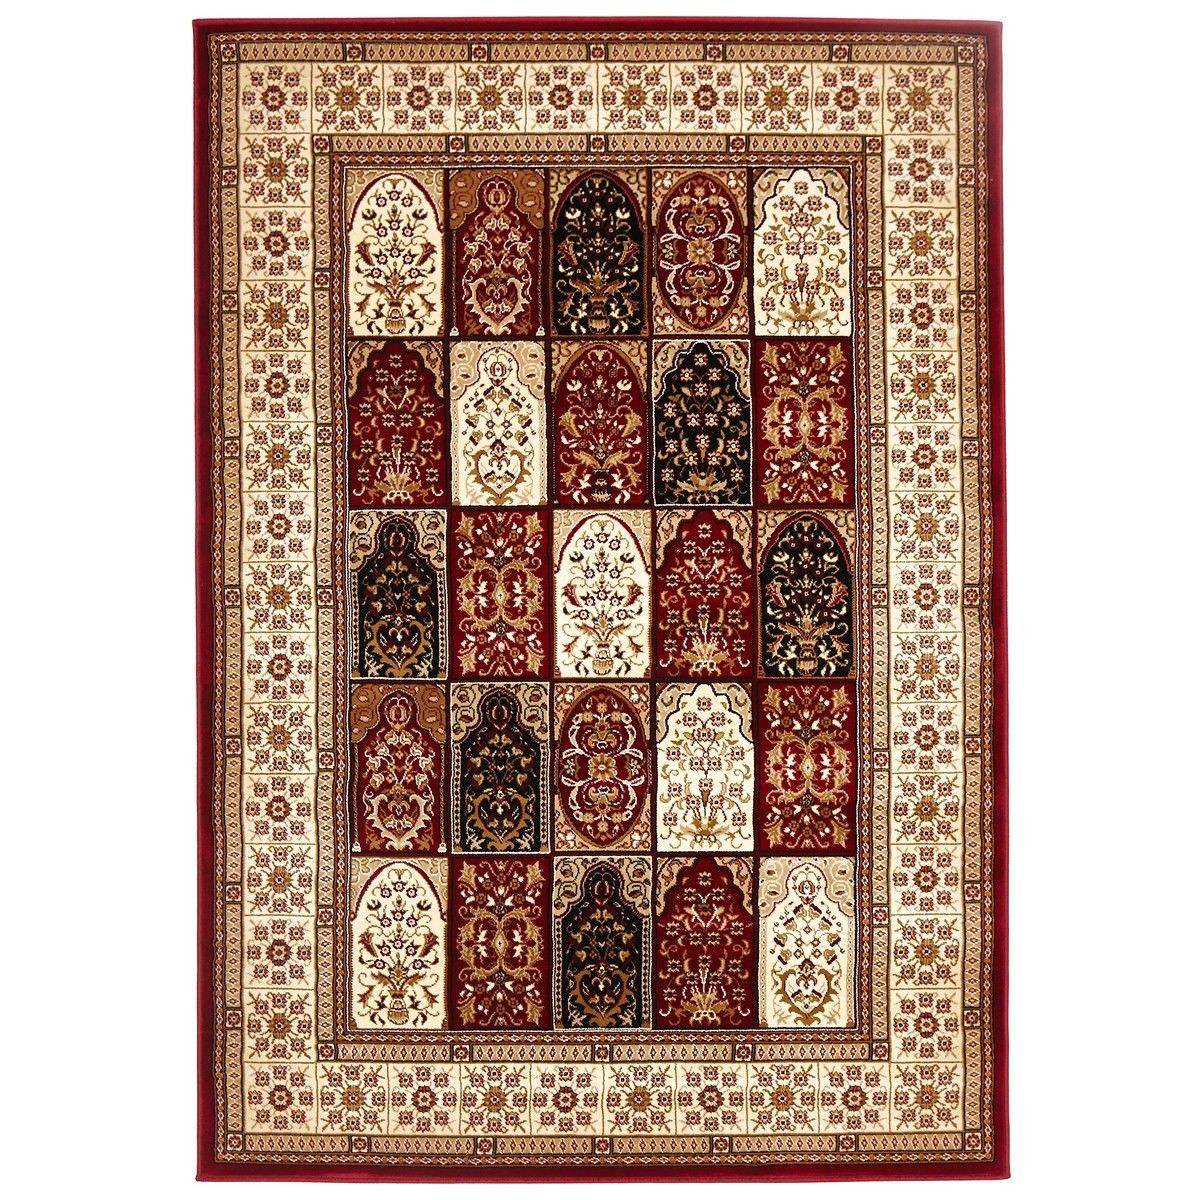 Sydney Traditional Tile Turkish Made Oriental Rug, 330x240cm, Red / Ivory